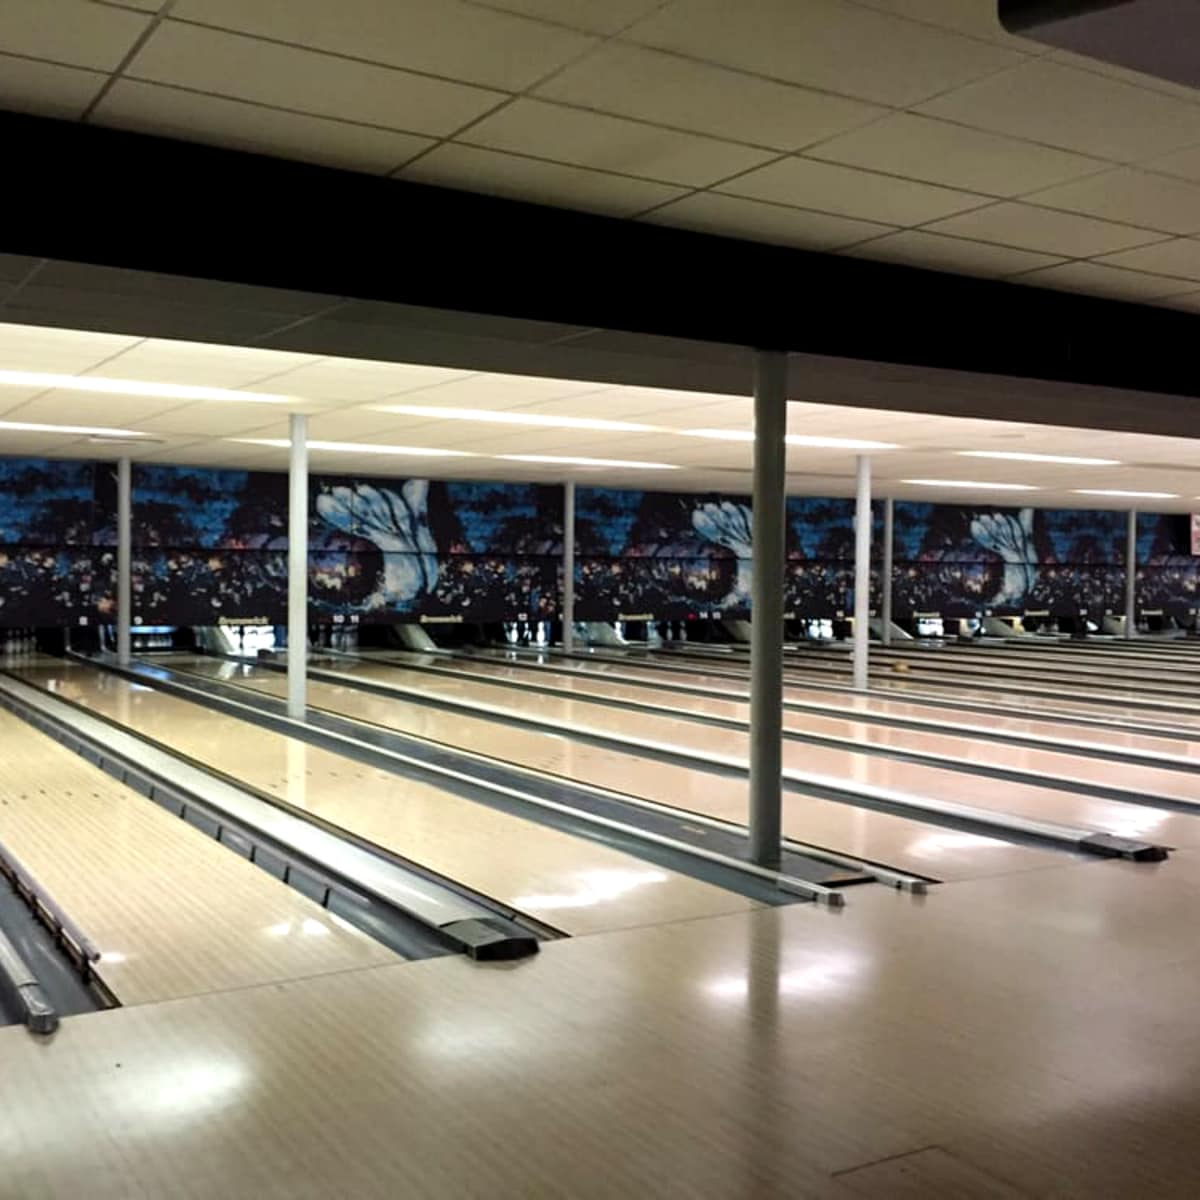 Palace Lanes bowling alley